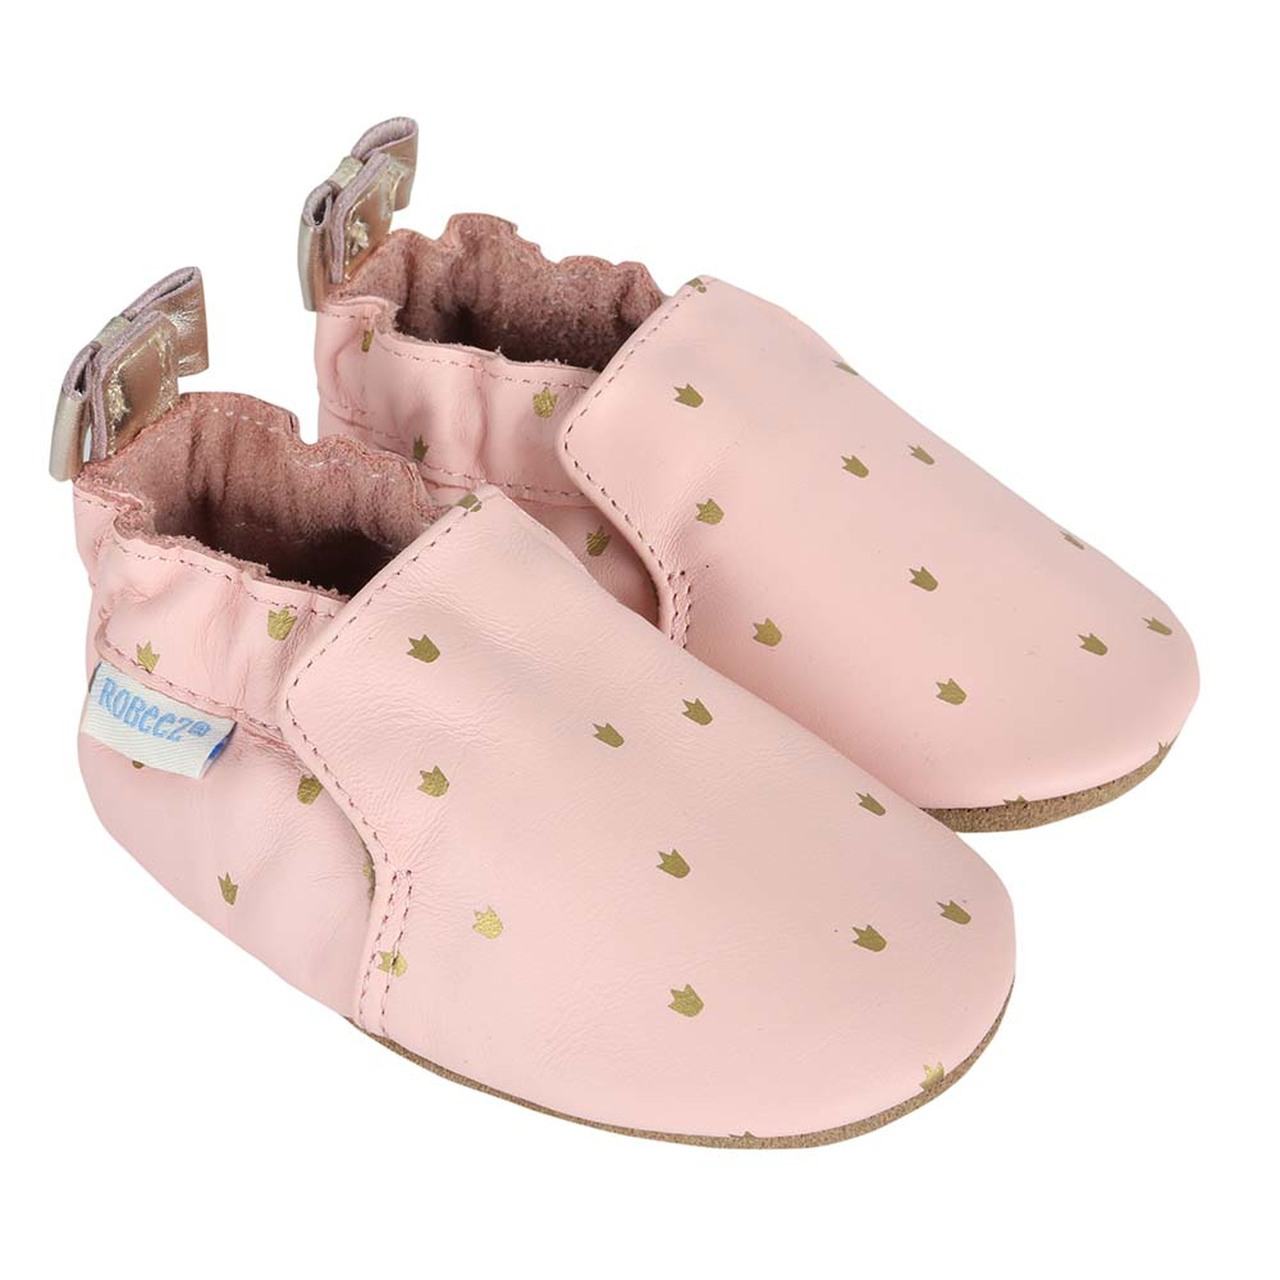 Prince Charming Baby Shoes, Soft Soles